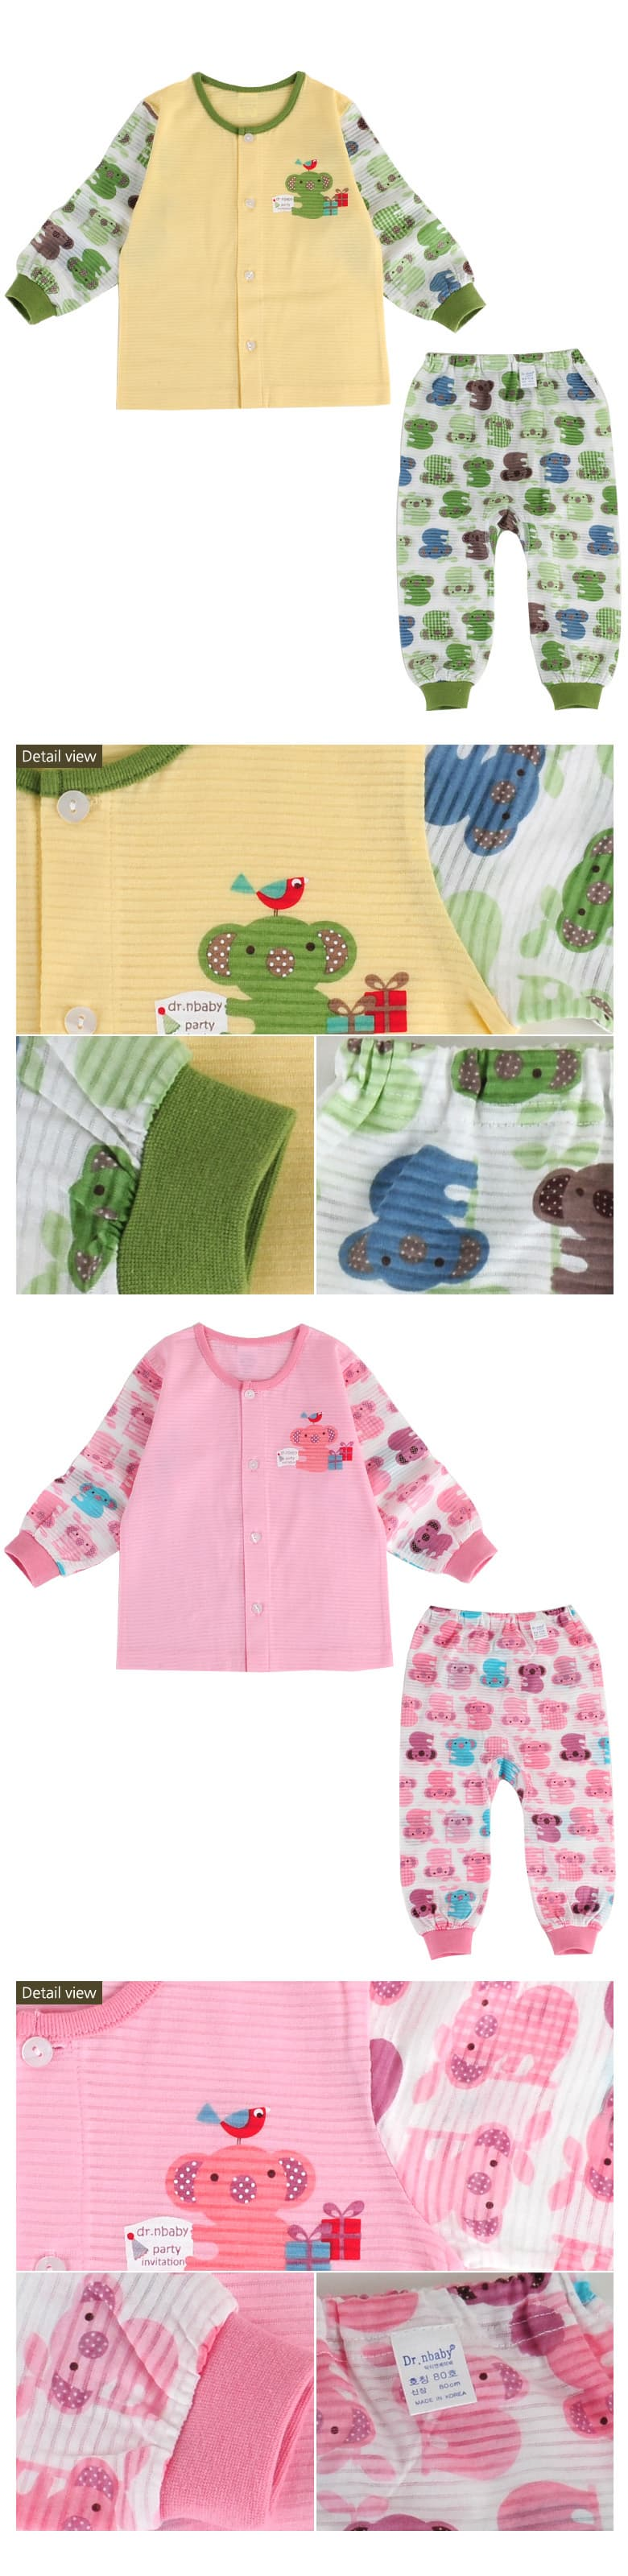 single layer long sleeves pajama set  koala